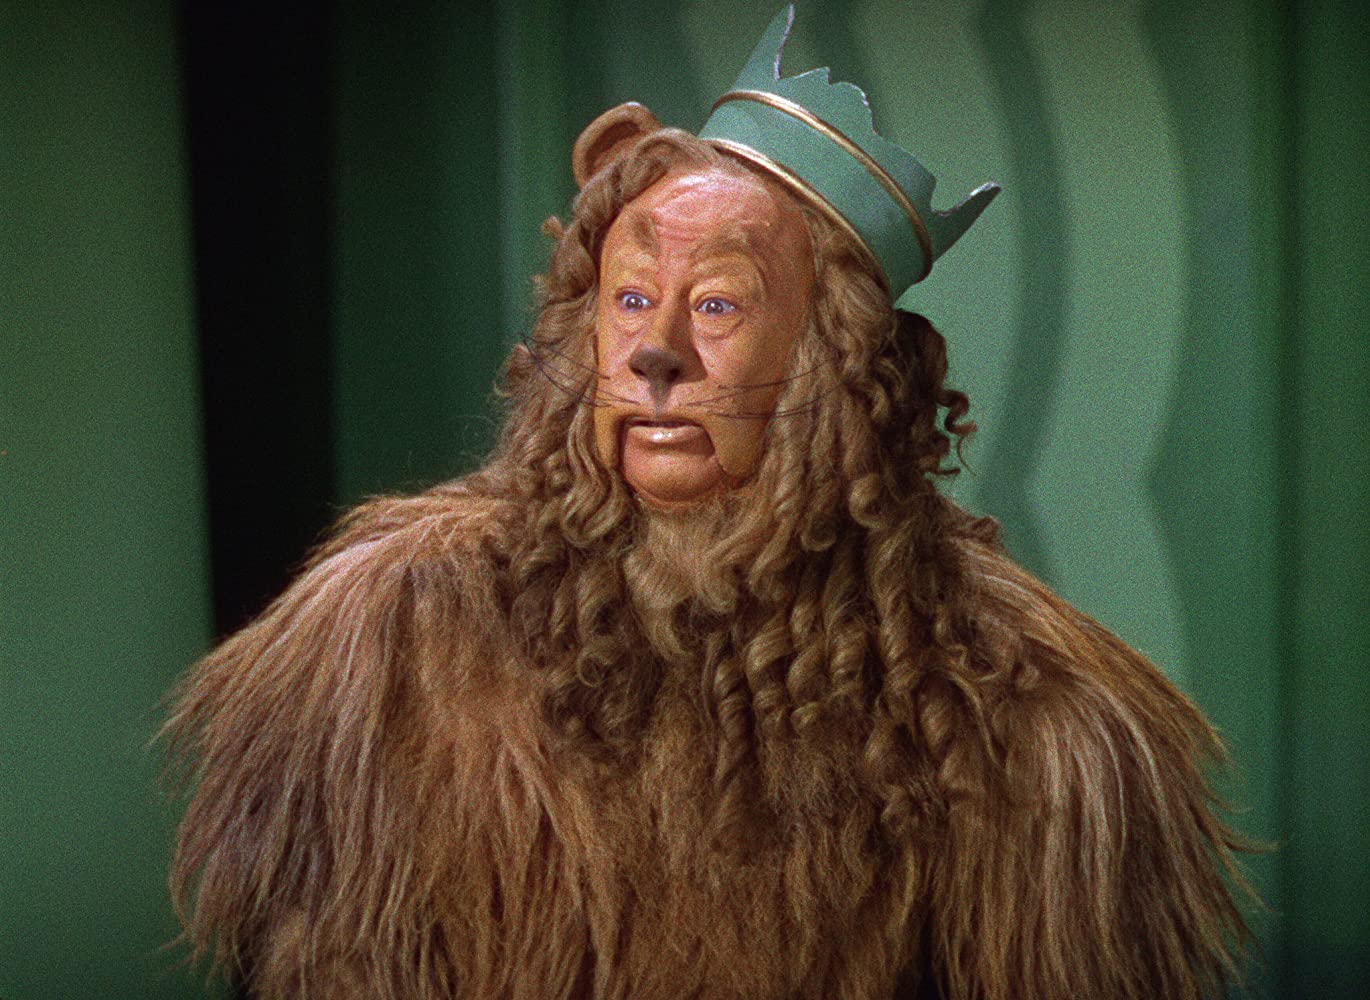 Bert Lahr in The Wizard of Oz 1939